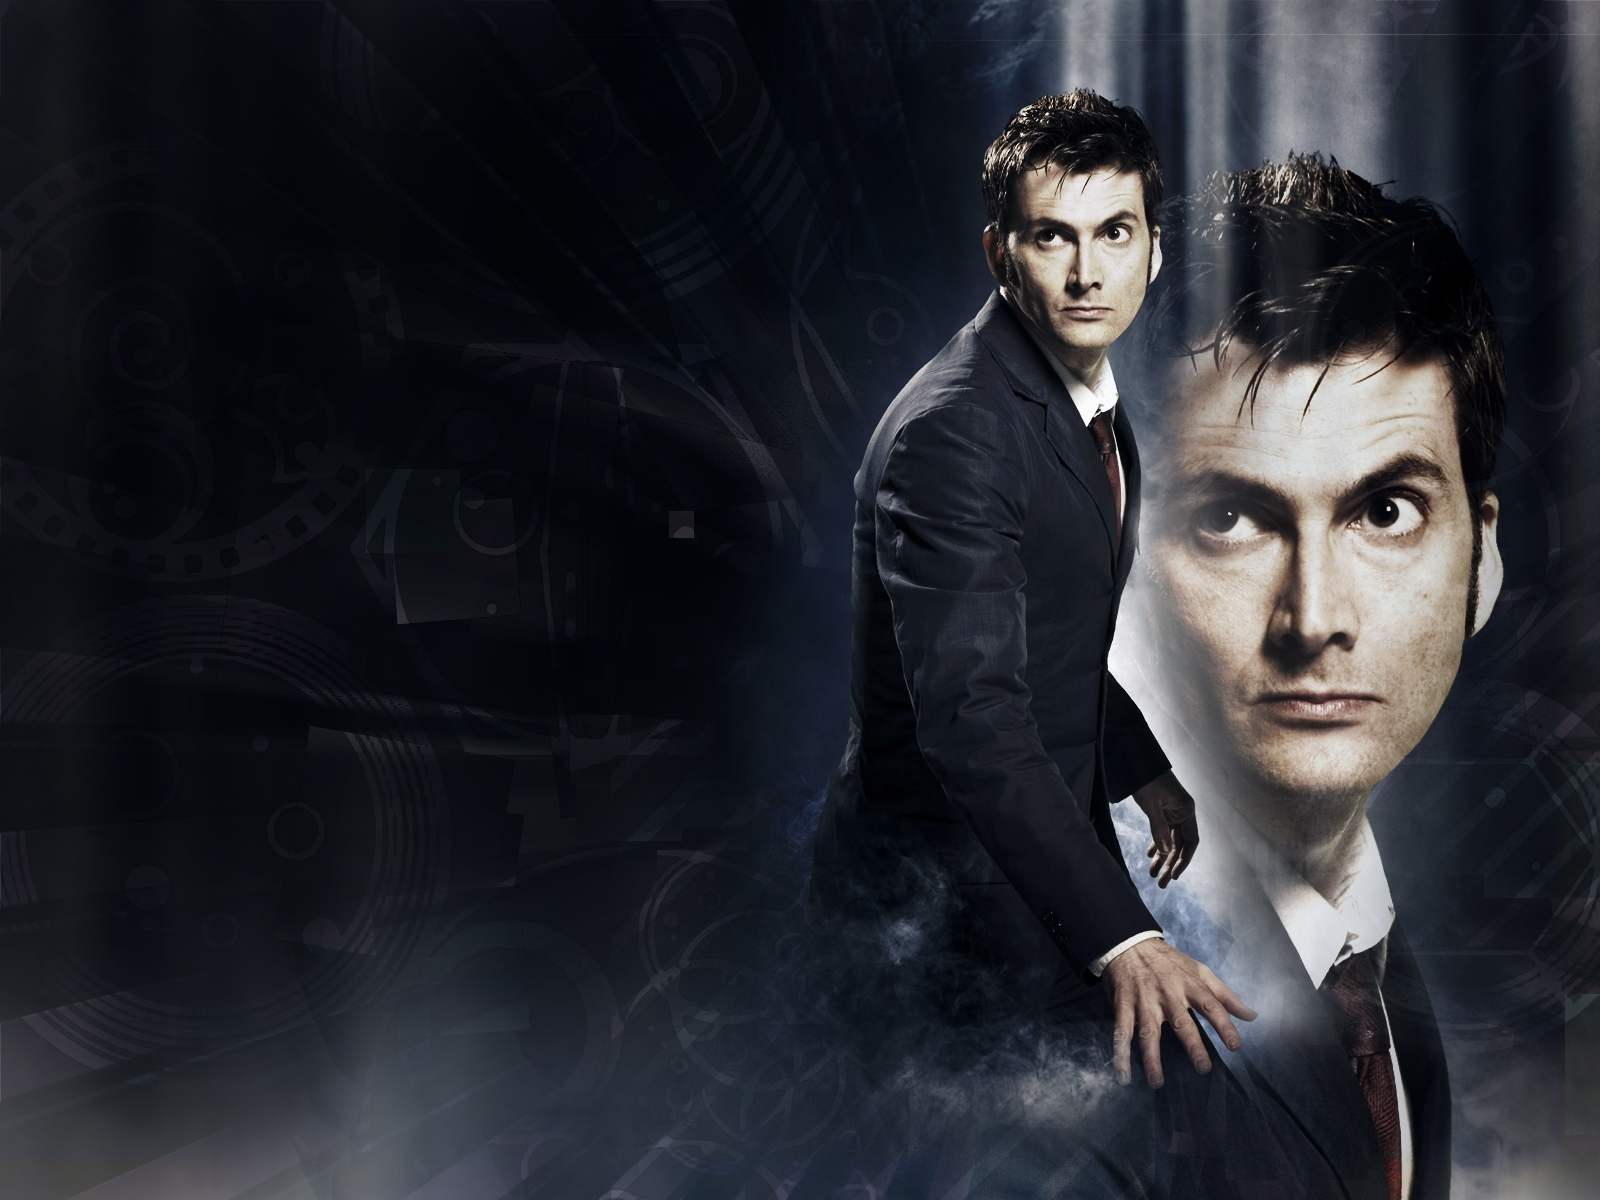 doctor who wallpapers david tennant group (77+)